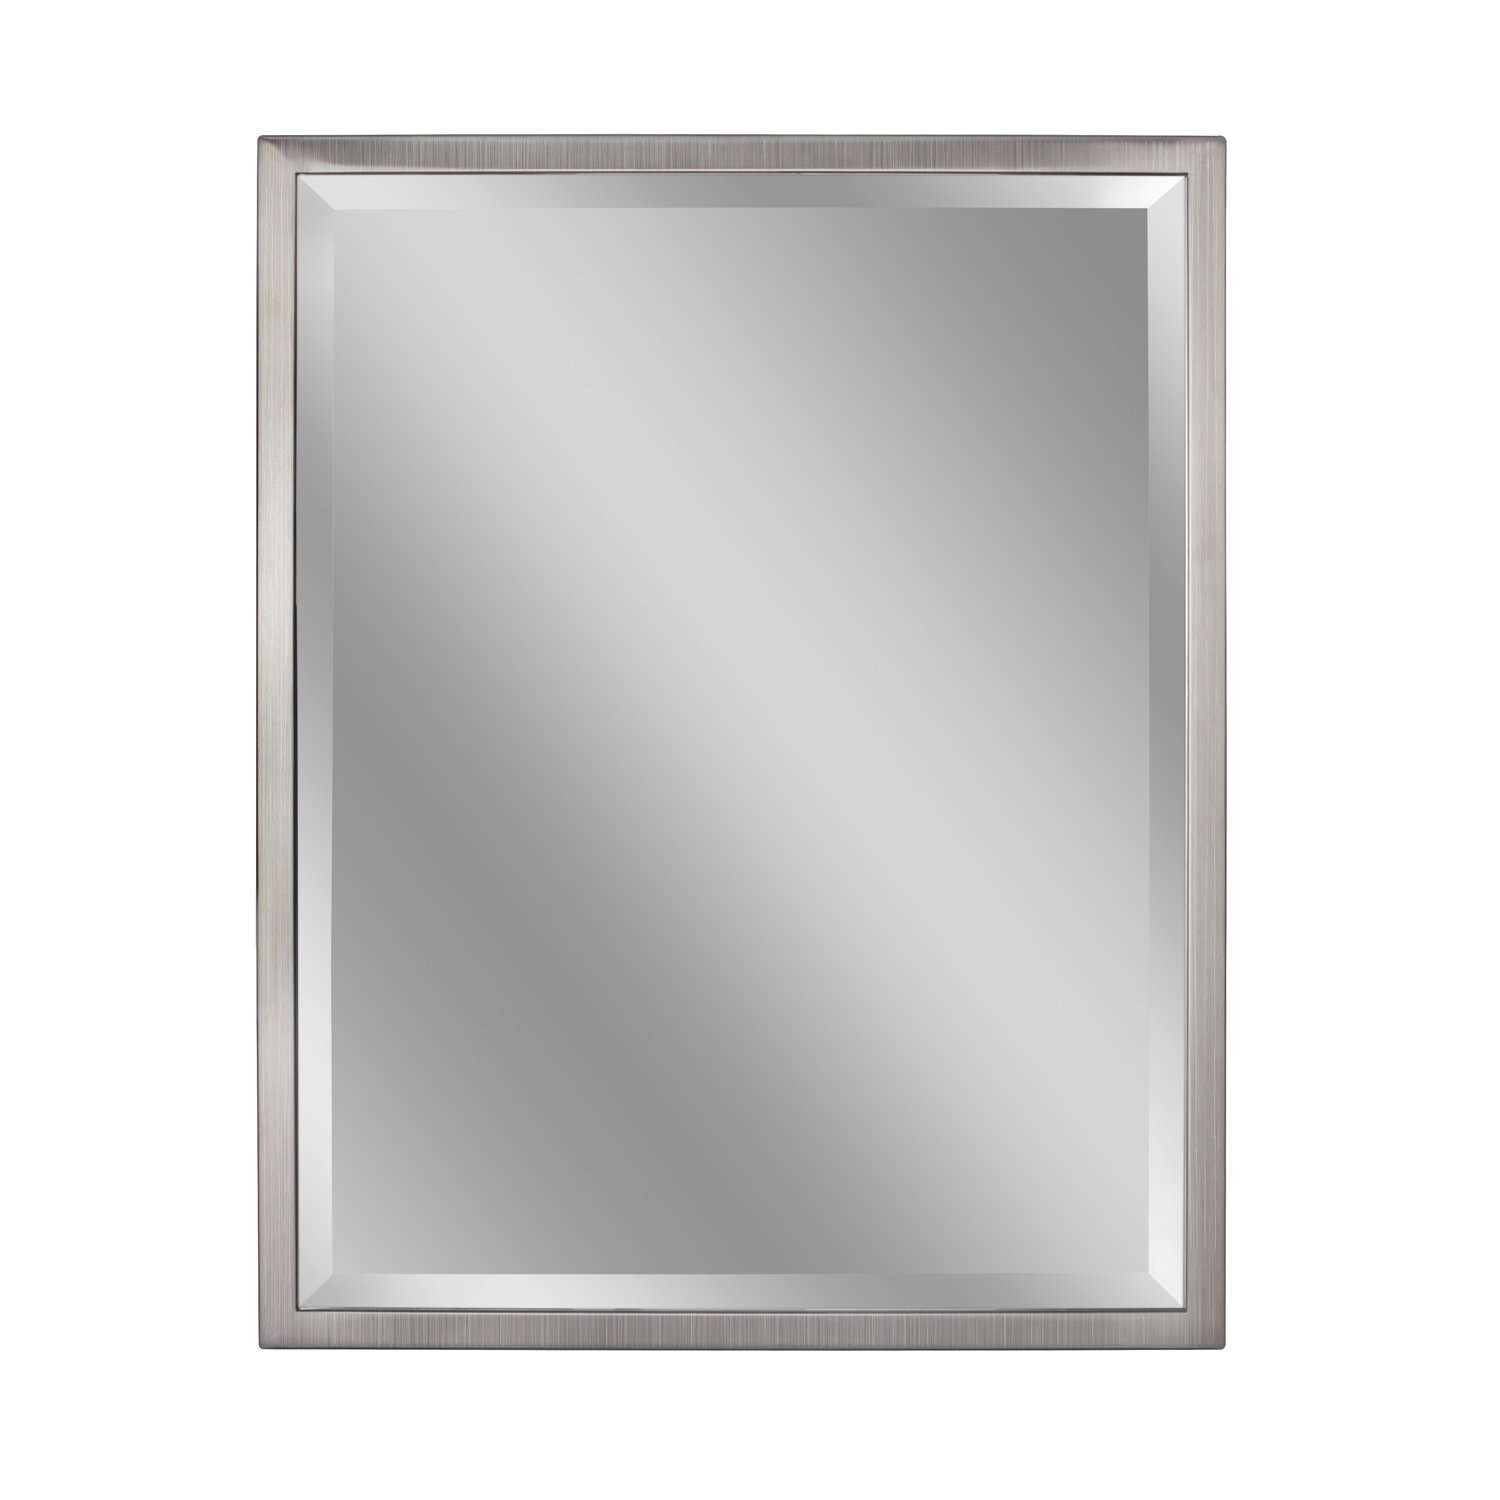 Wide Metal Frame Wall Mirror Head West Inc Head West 24 x 30 Classic Brush Nickel 1 in 8020